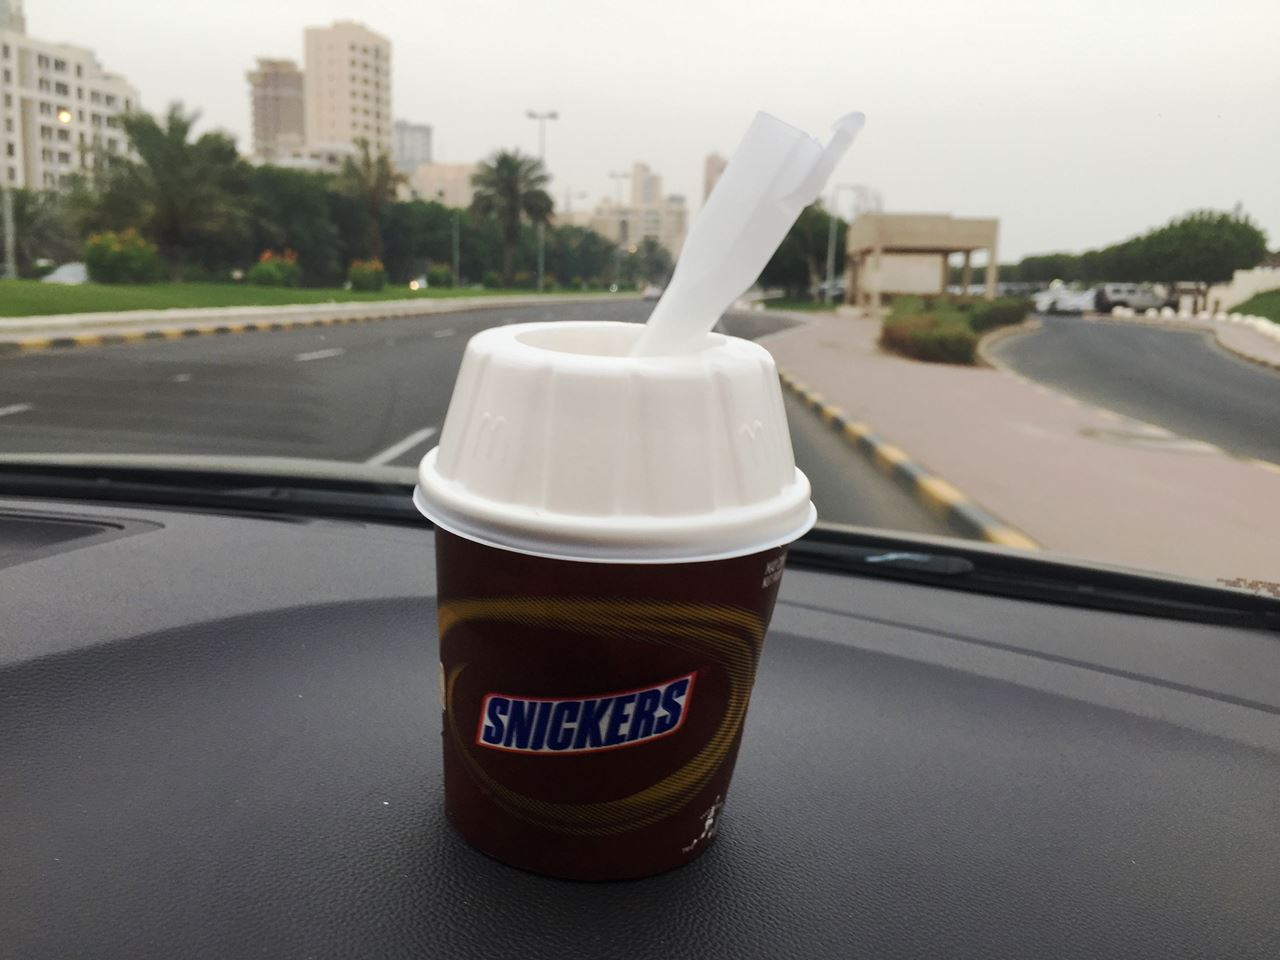 Snickers McFlurry from McDonald's ... perfect